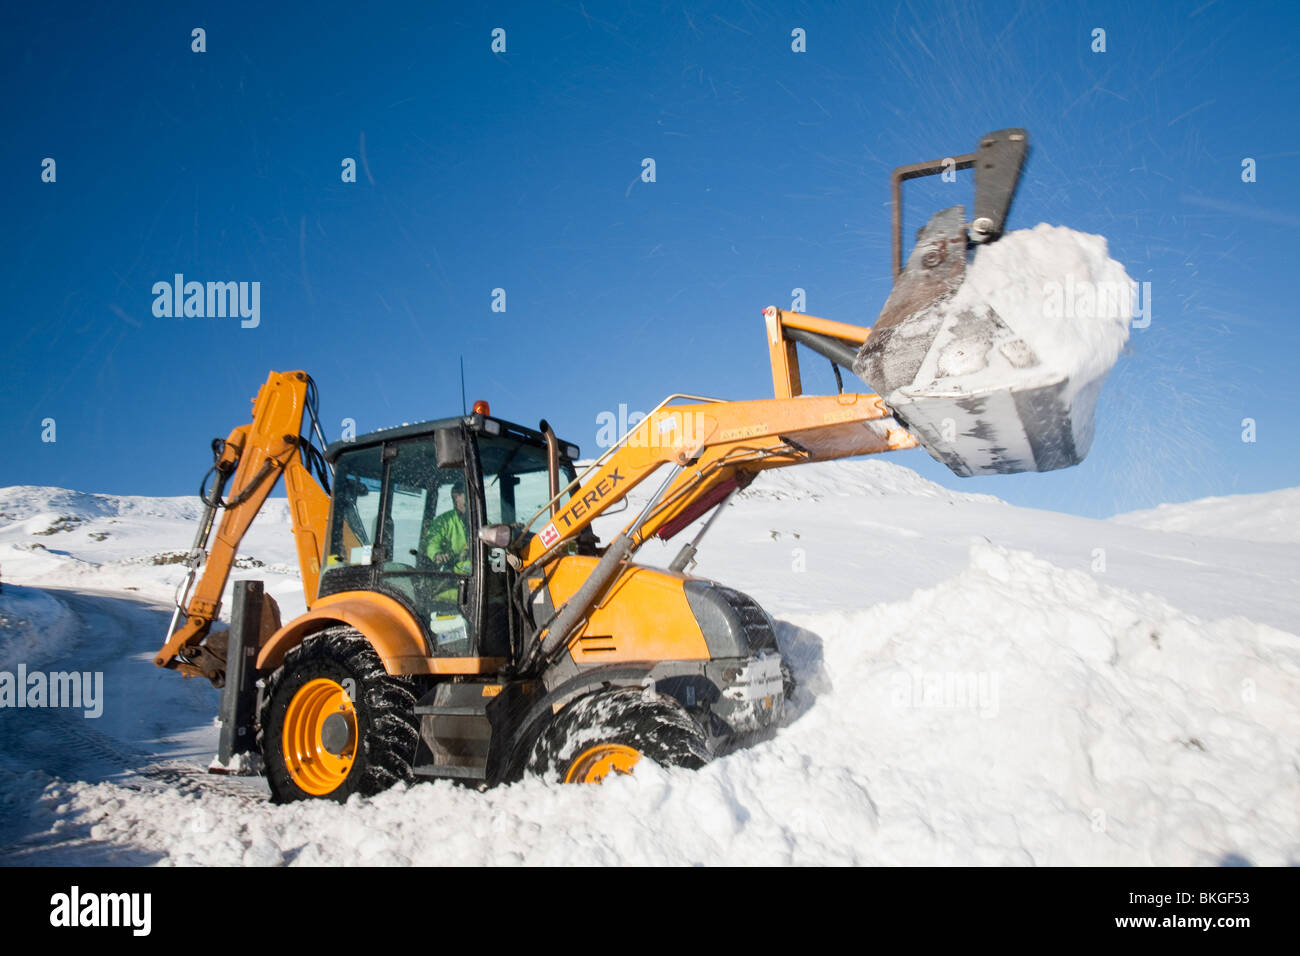 Charlie Middleton, an employee of cumbria vounty council clears snow from the blocked Kirkstone Pass, UK - Stock Image